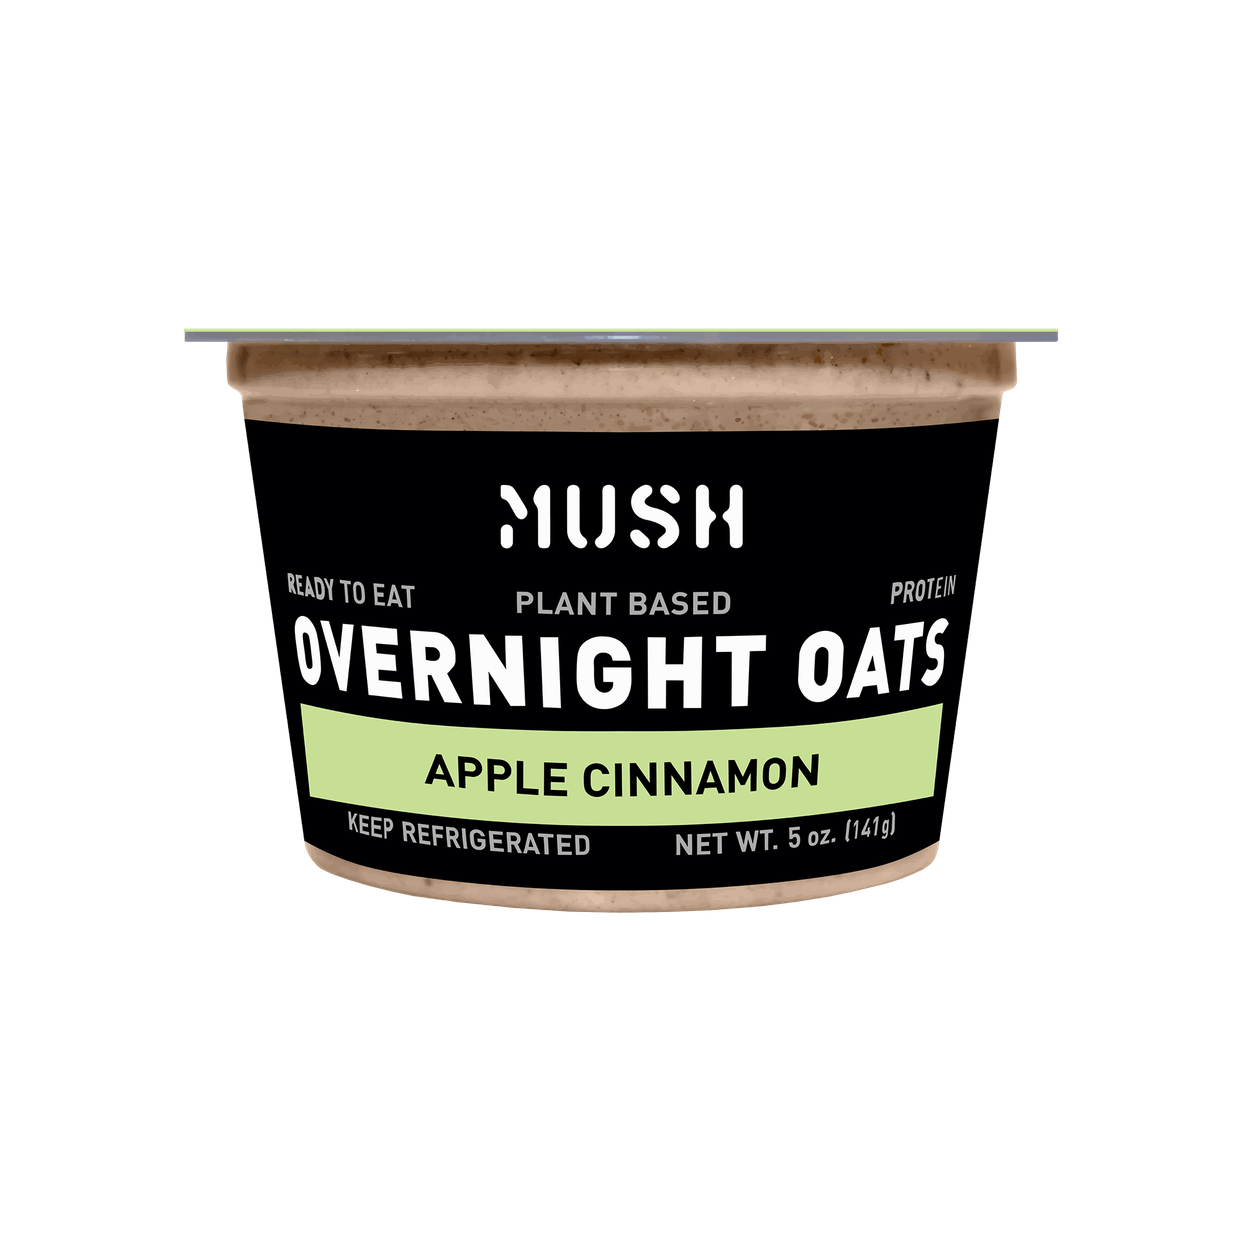 mush - apple cinnamon